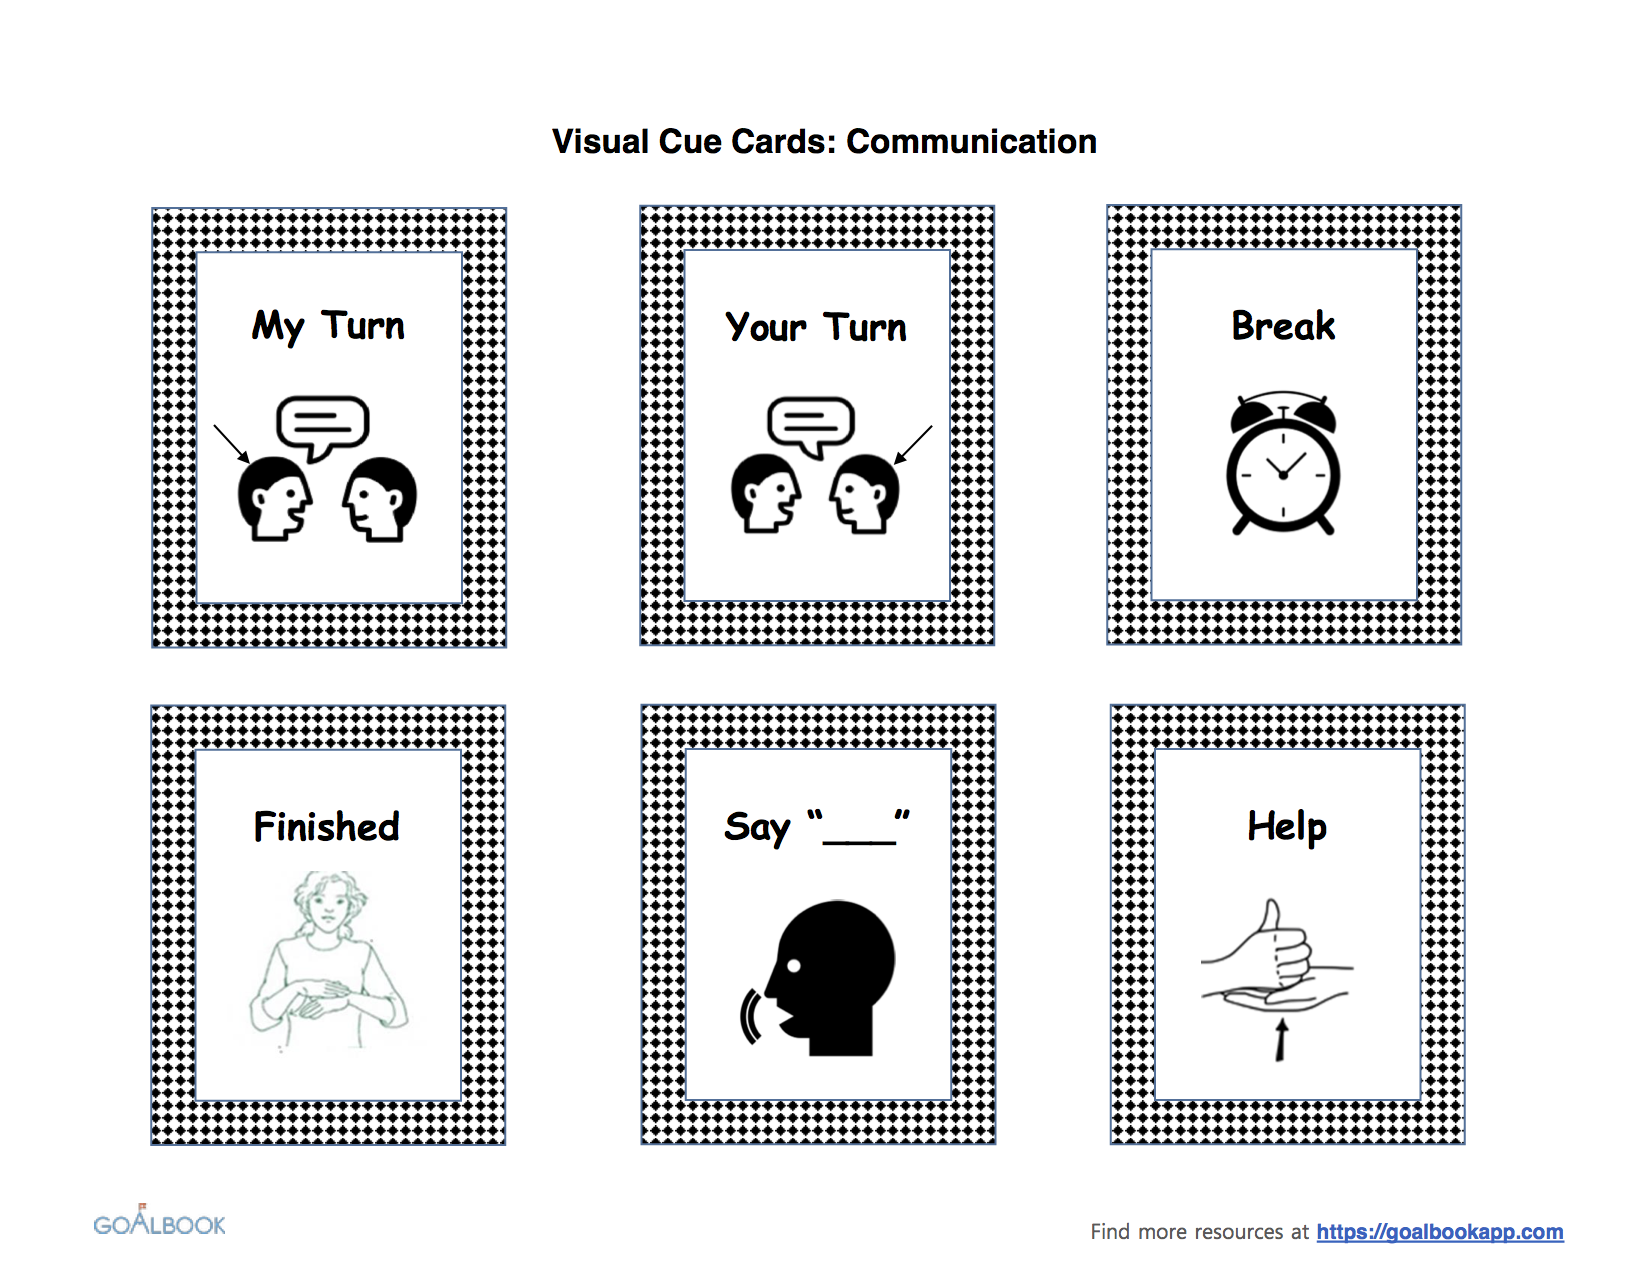 Student Communication: Visual Cue Cards